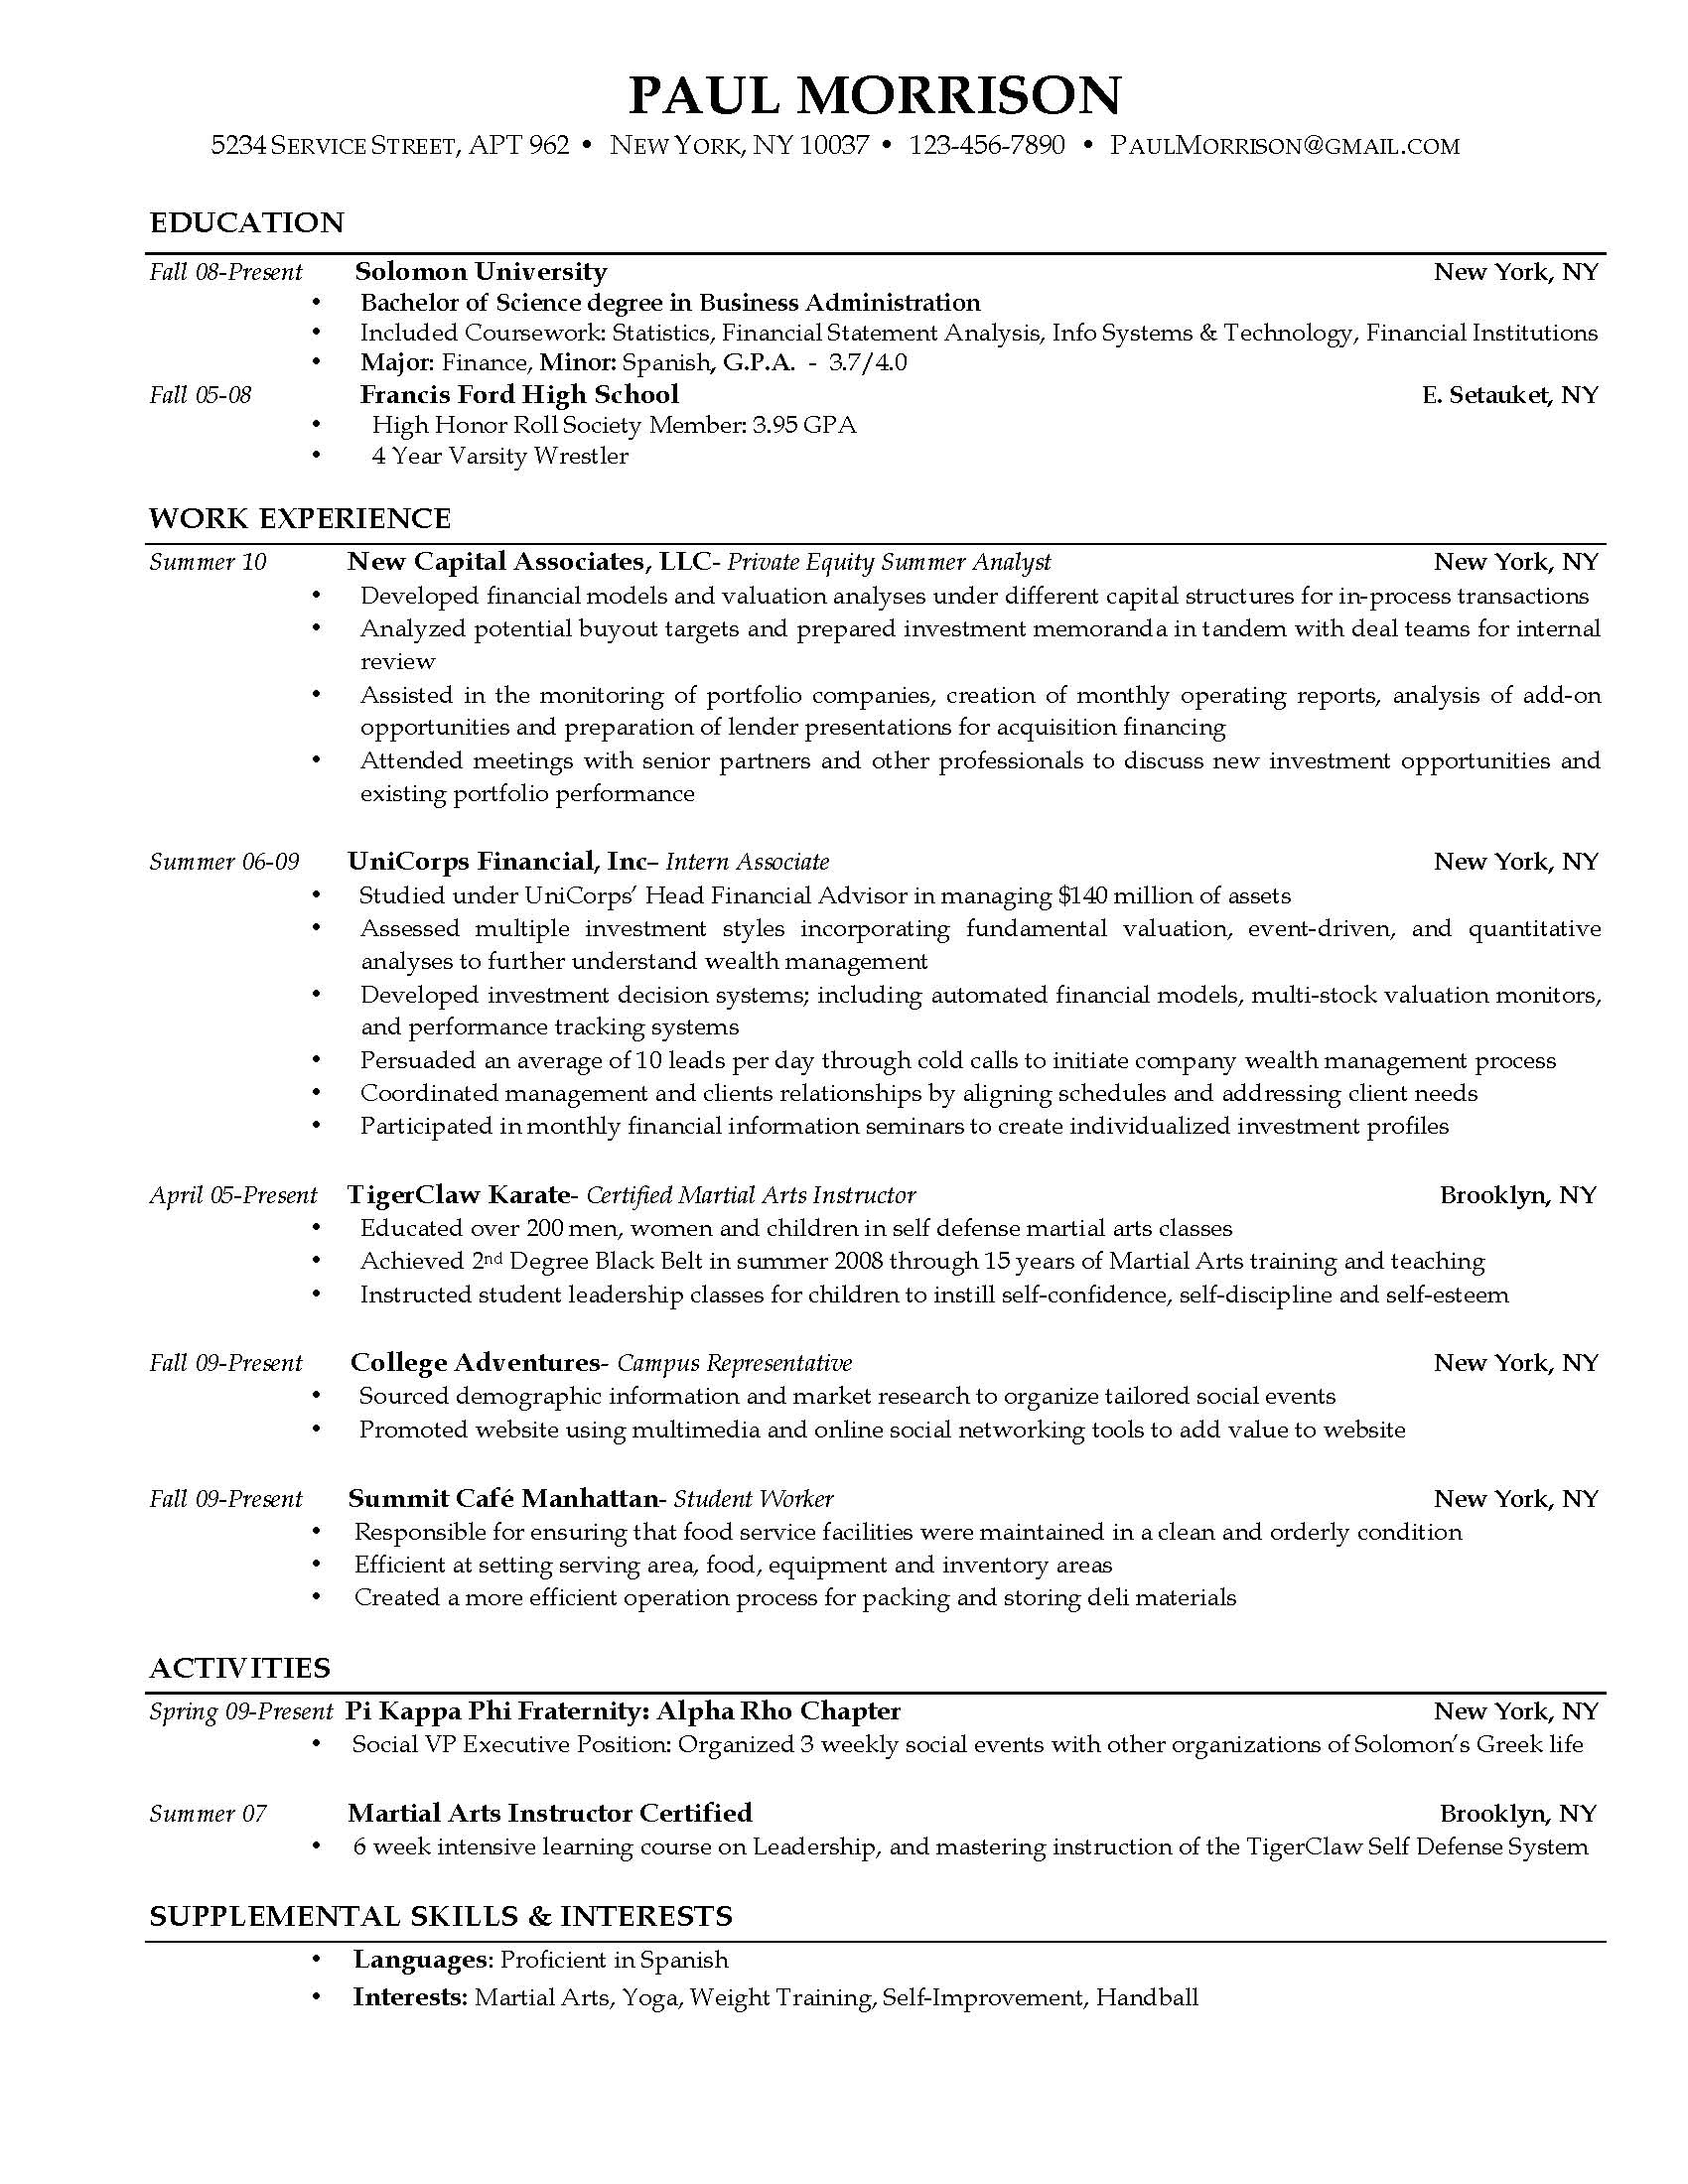 good job descriptions for resume sample customer service resume good job descriptions for resume job search employmentcrossing here is an example resume of a current